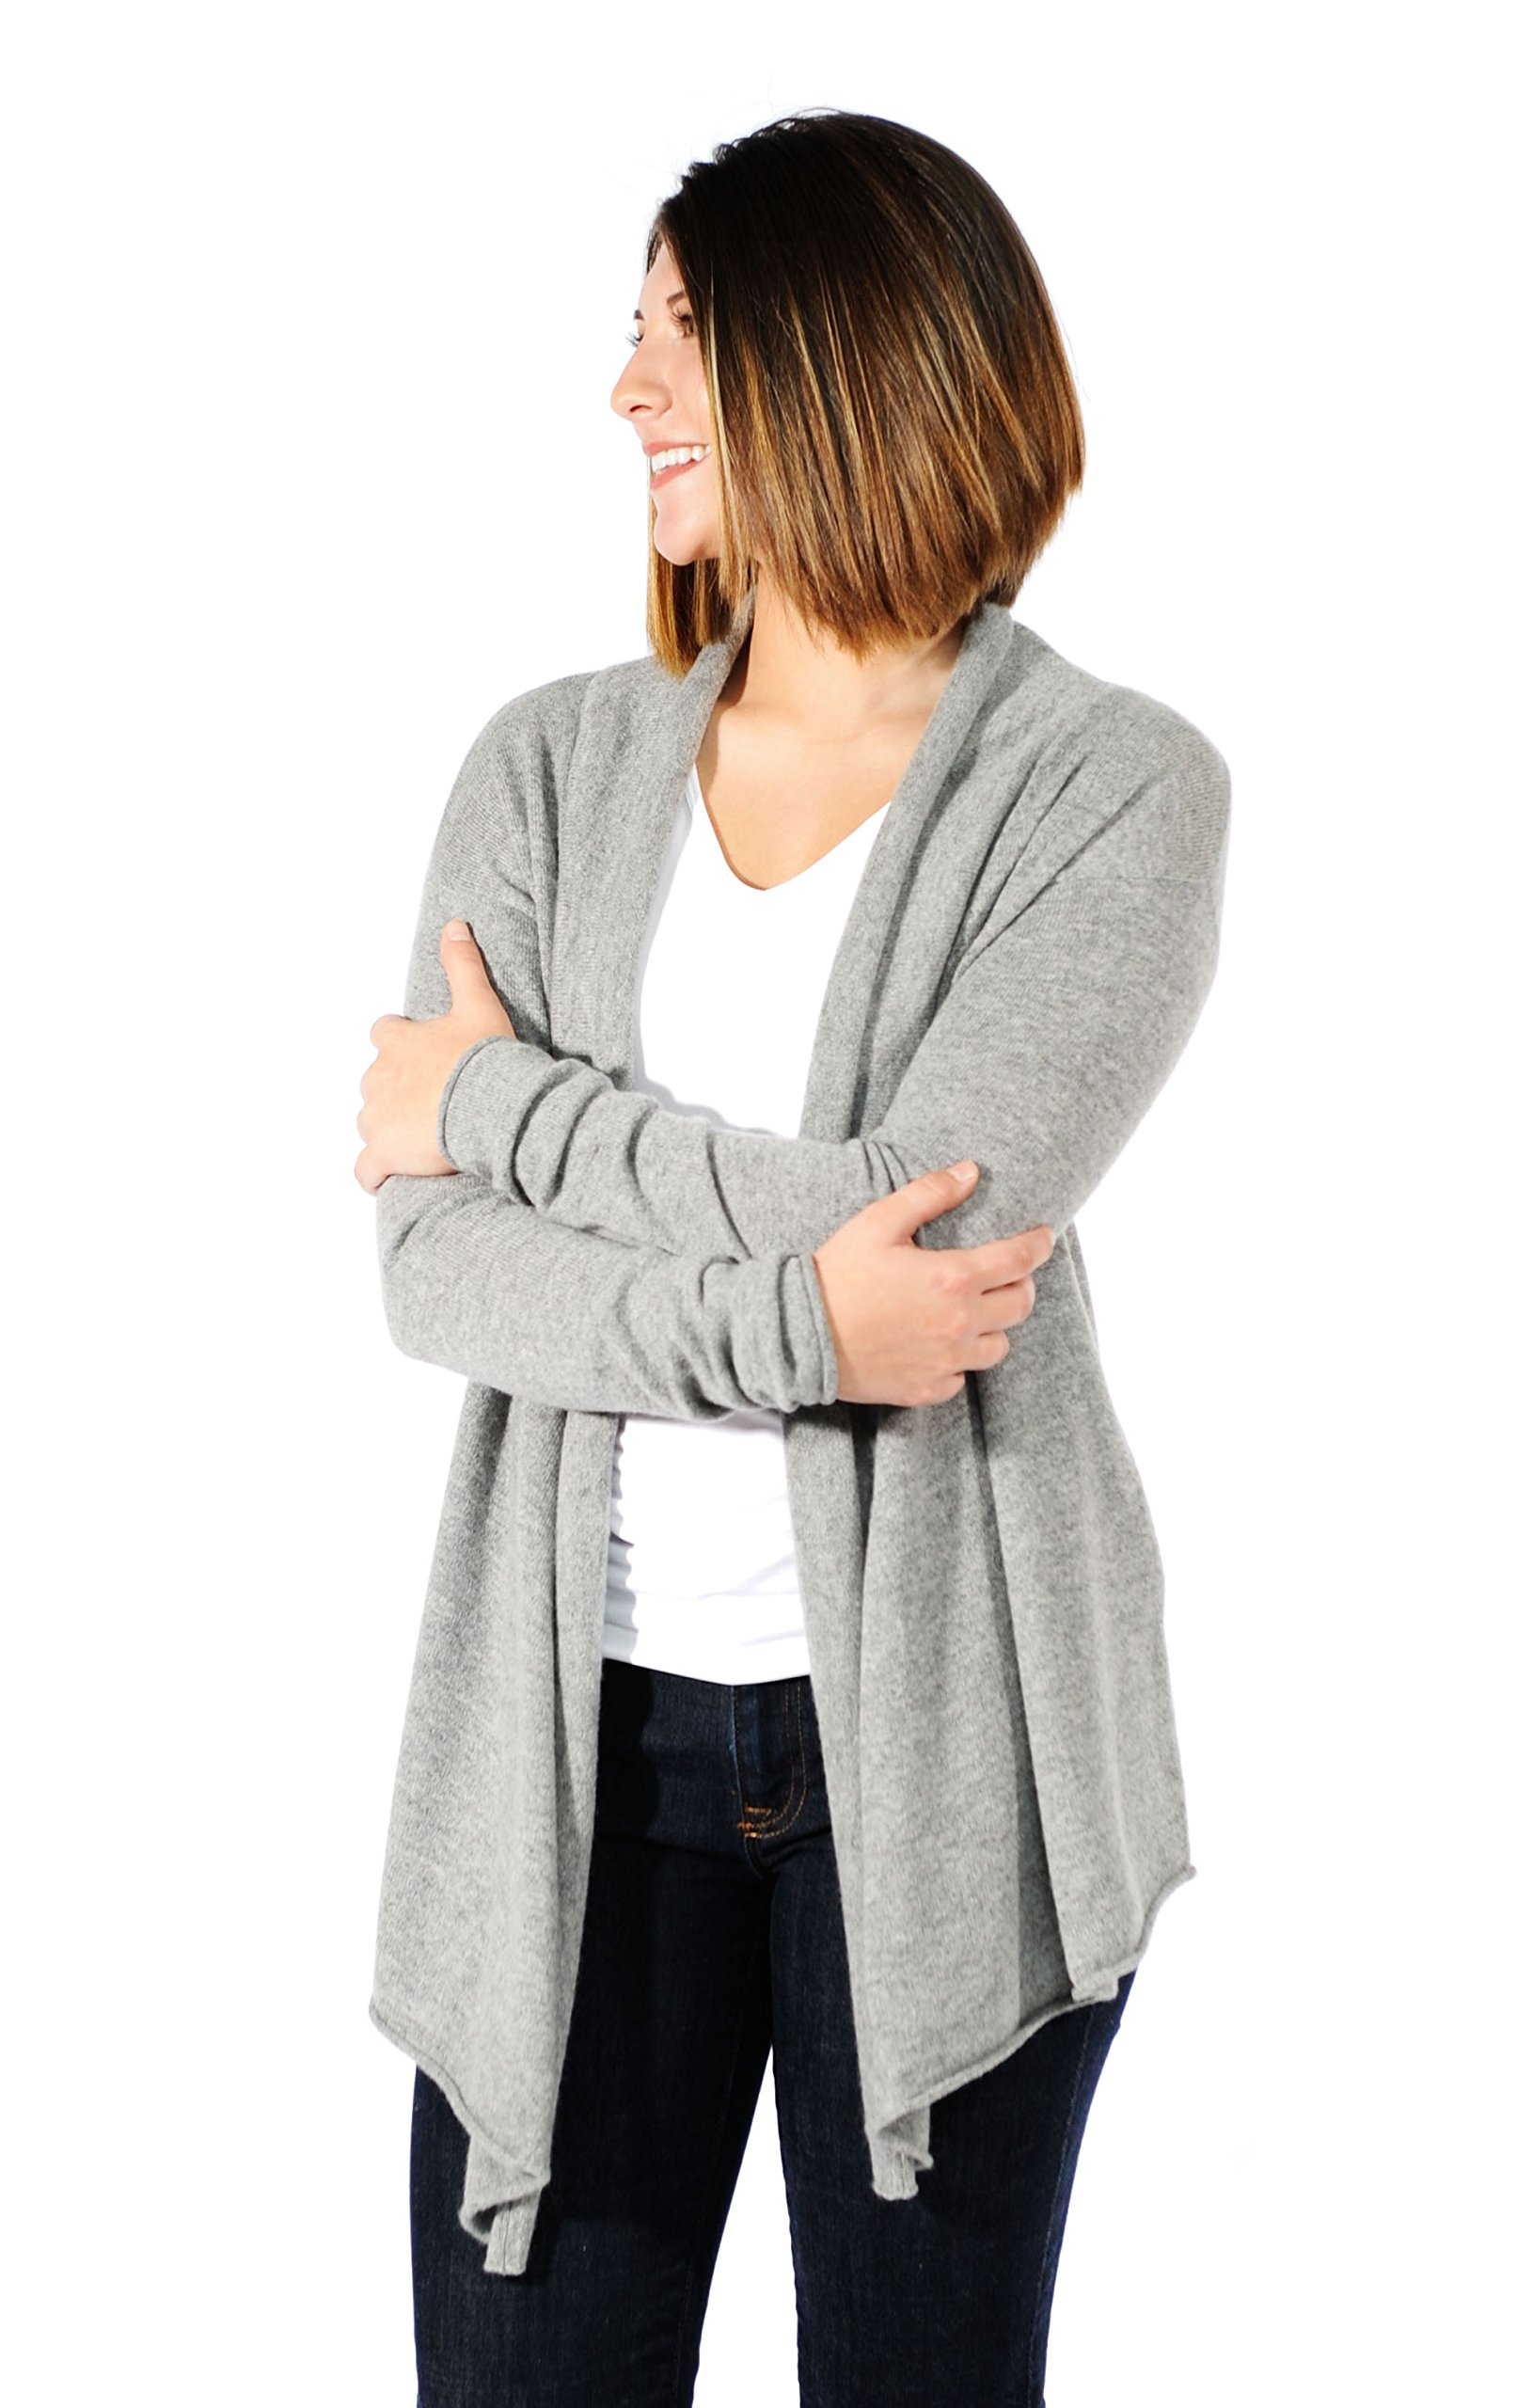 Gigi Reaume 100% Cashmere Womens Sweater, Open Front Cardigan, Shawl Collar Swing Style (Large, Grey Heather) by Gigi Reaume